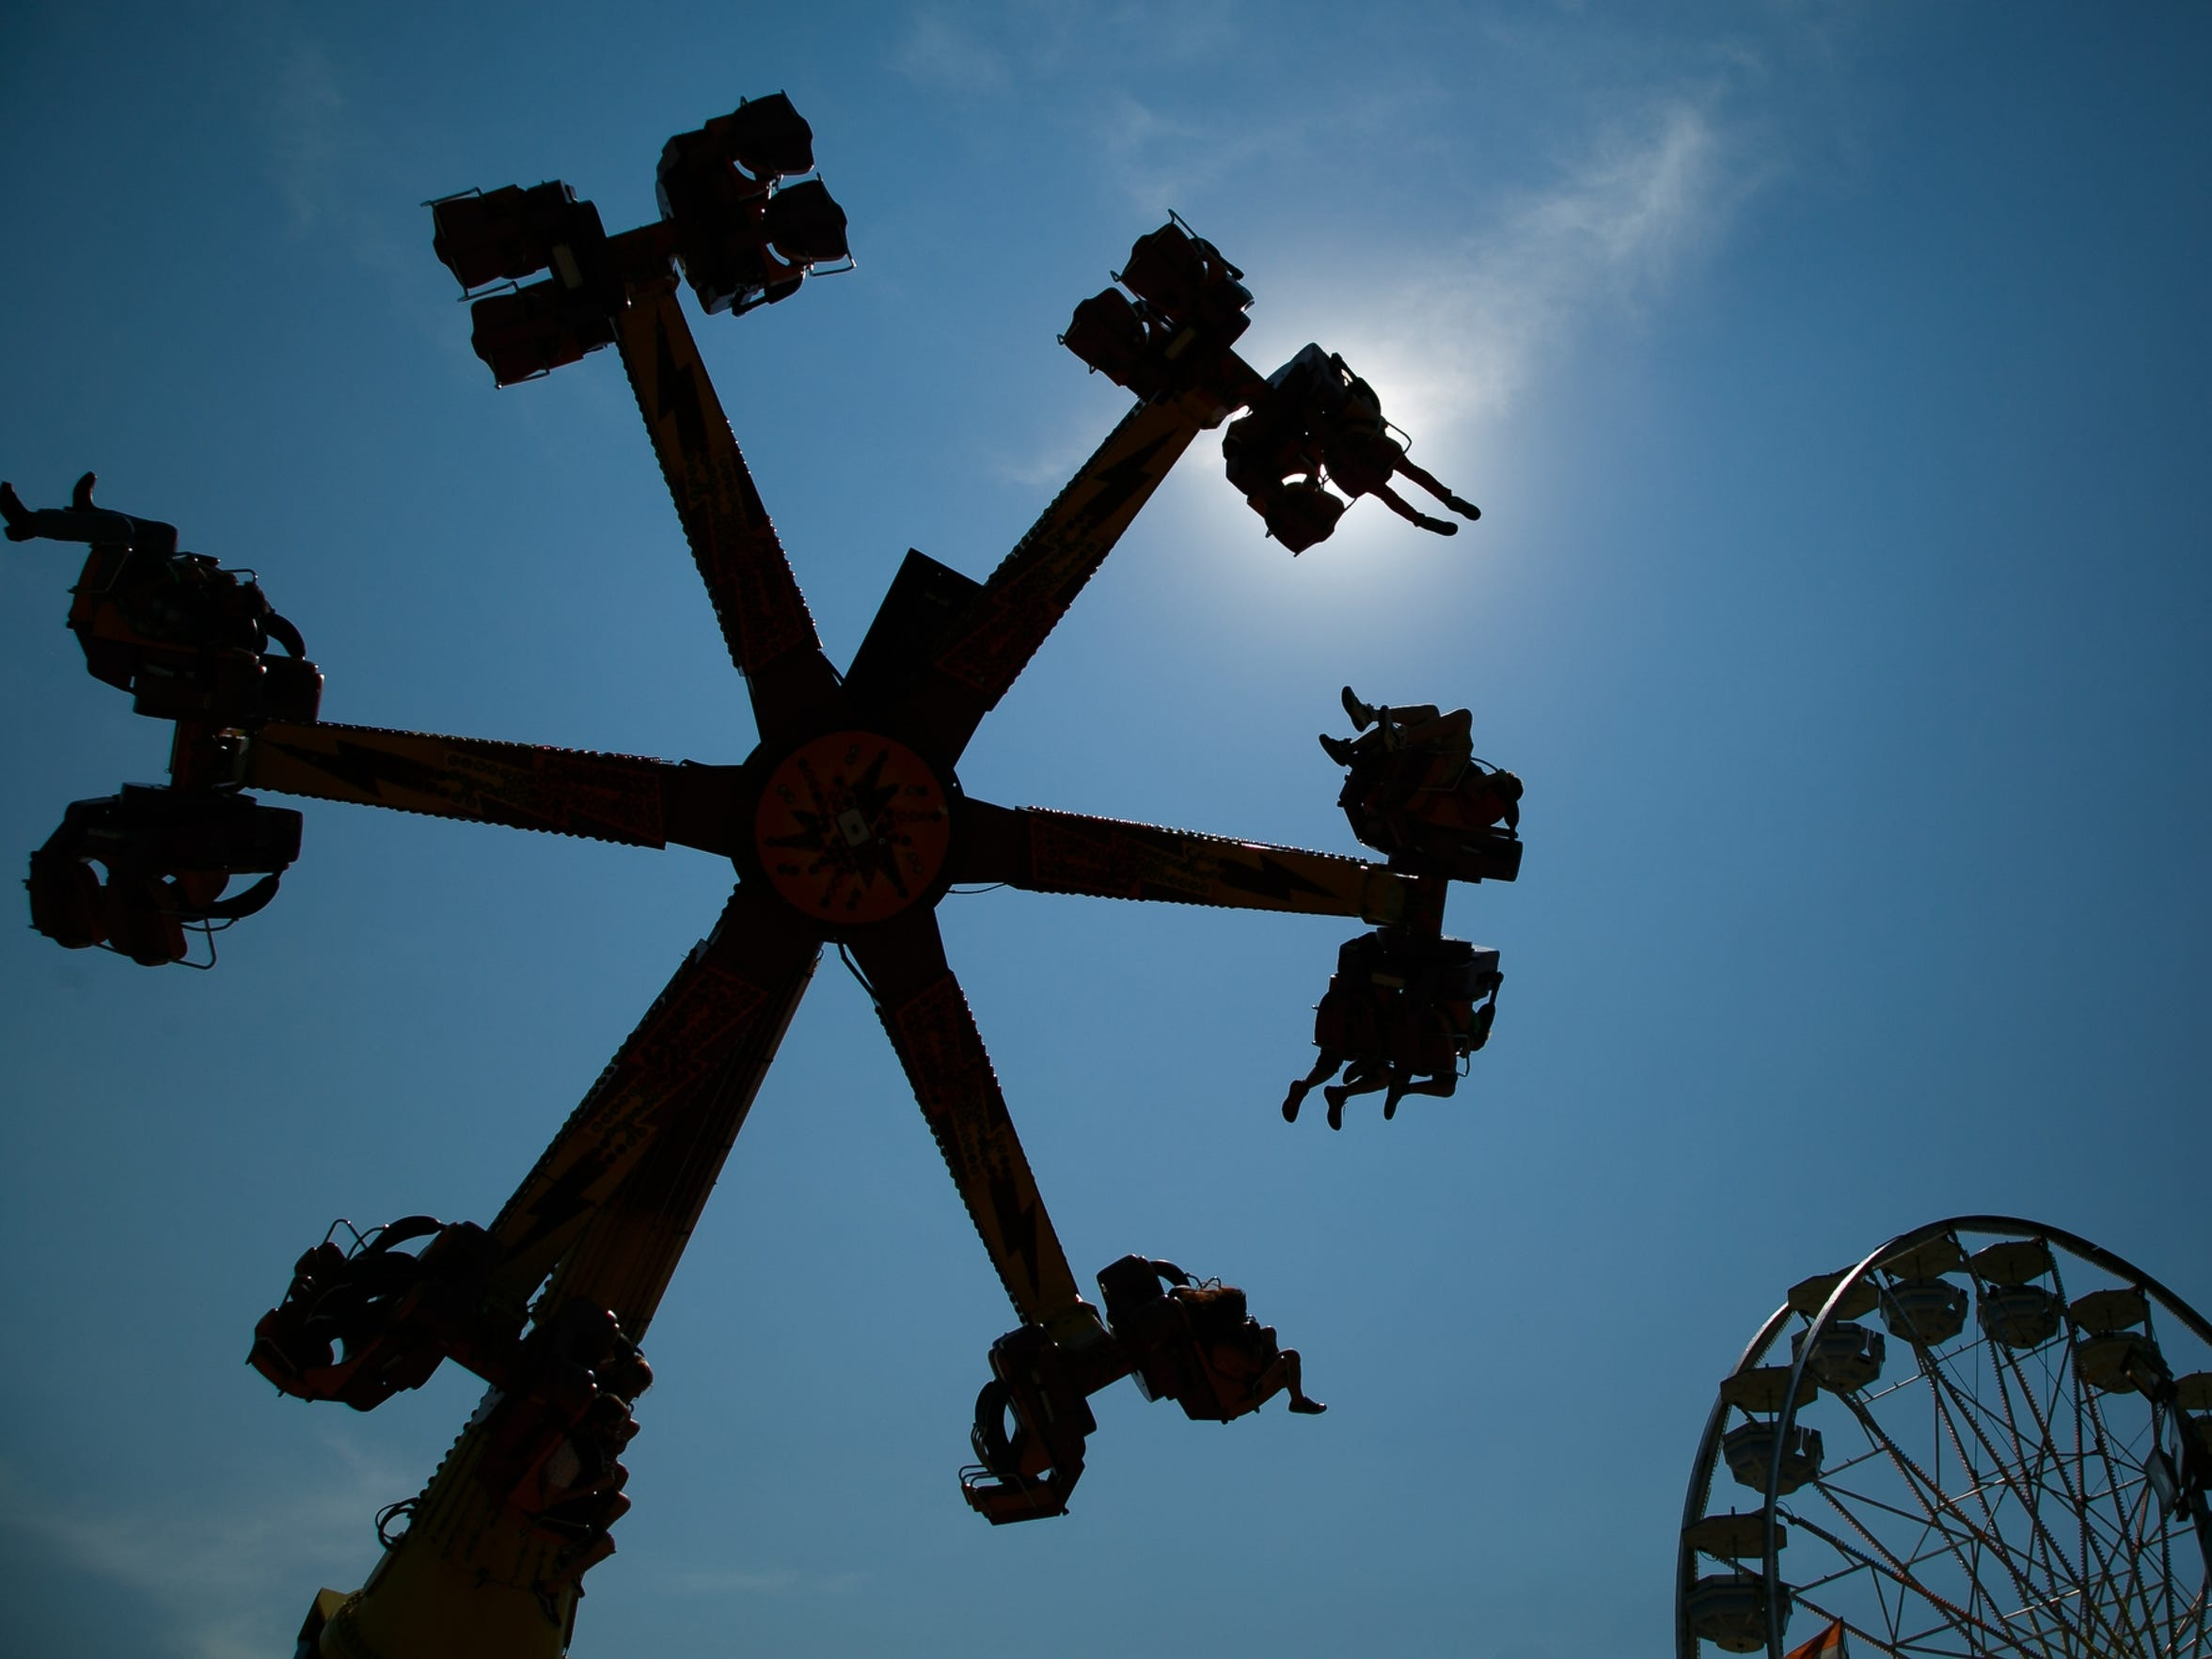 Fairgoers take a spin on rides at the Midway at the